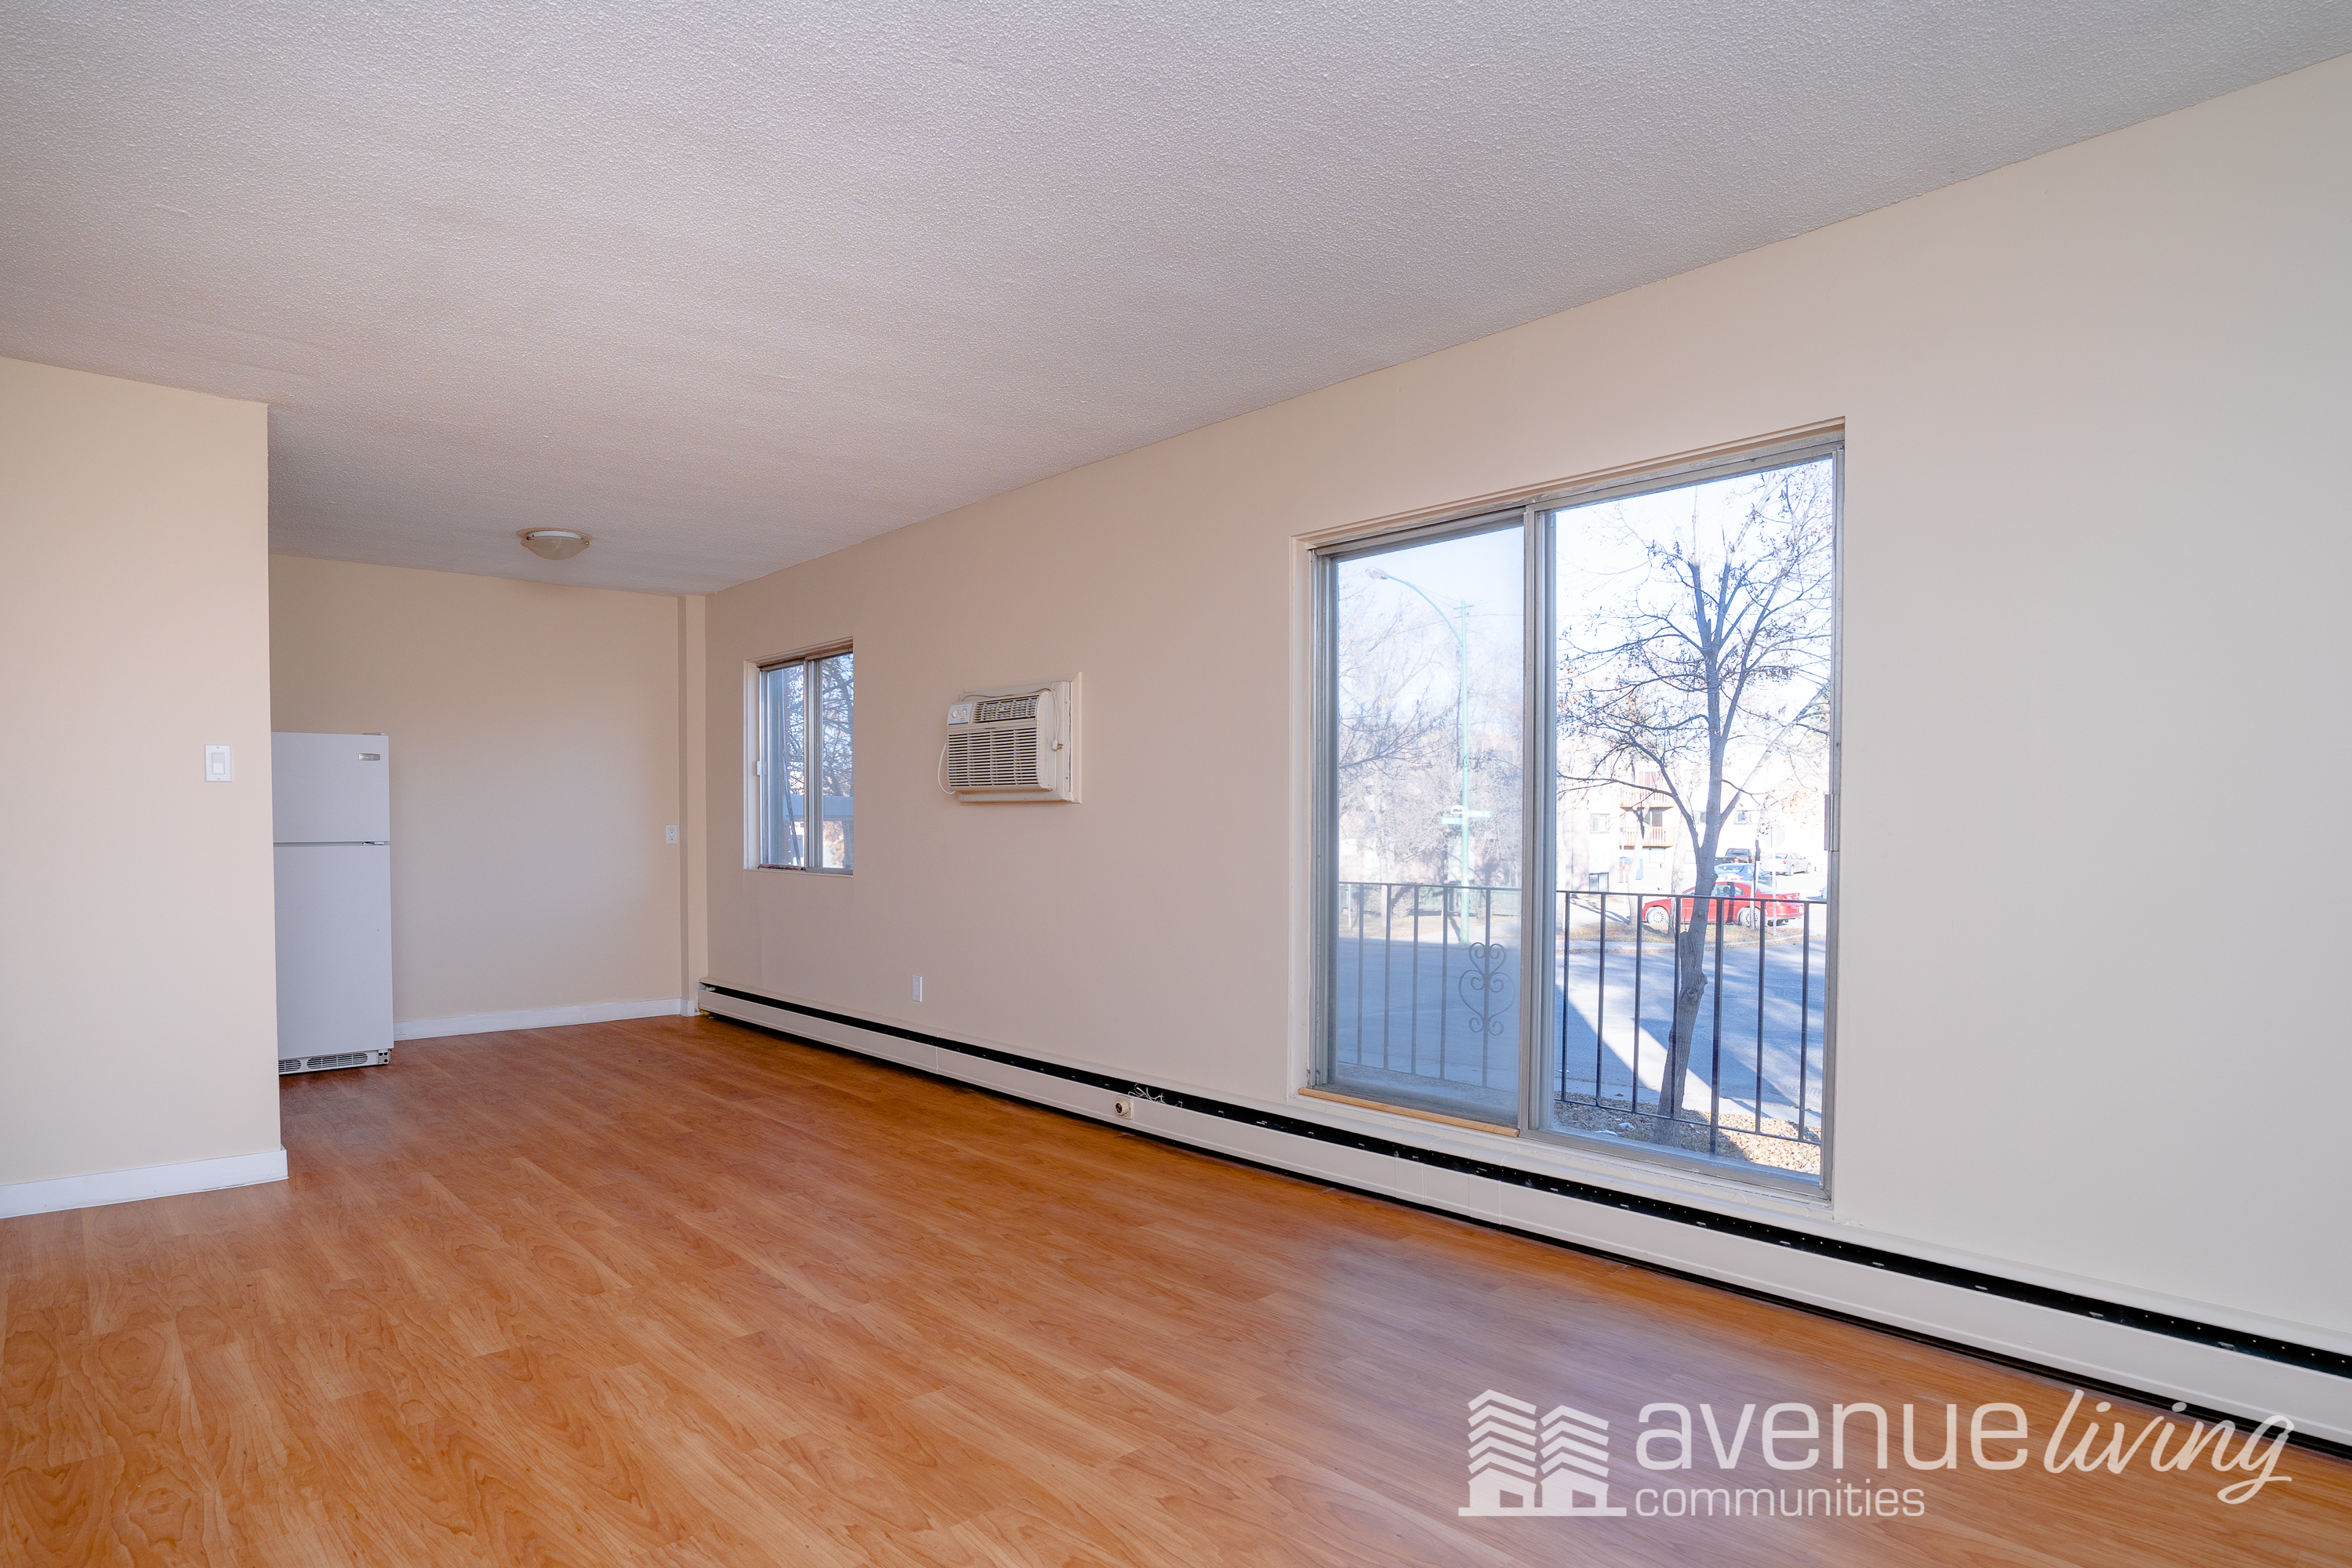 730 Credit Score >> Geneva Apartments for Rent in Saskatoon | Avenue Living ...